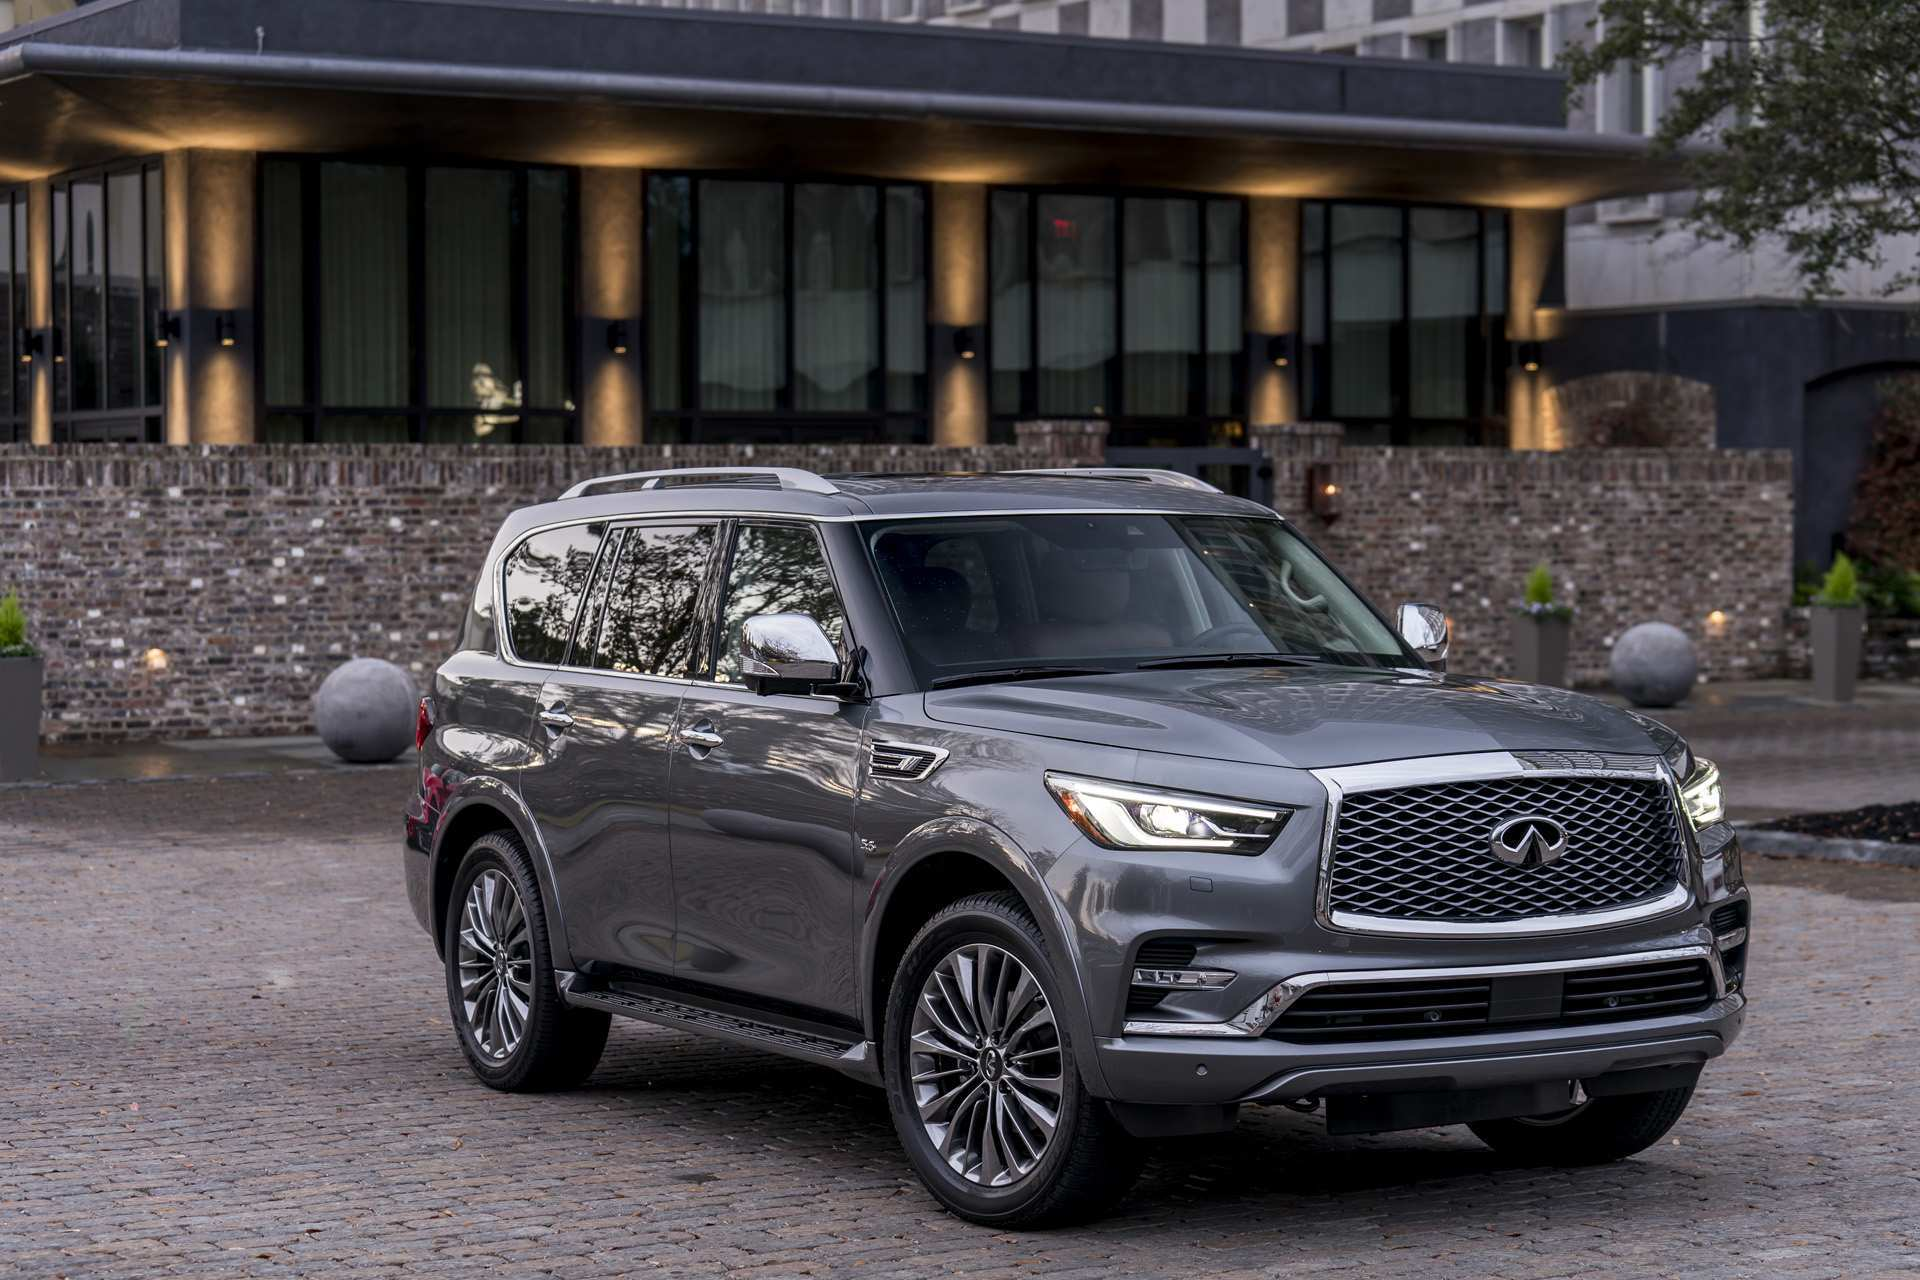 61 Best Review 2020 Infiniti QX80 New Concept by 2020 Infiniti QX80